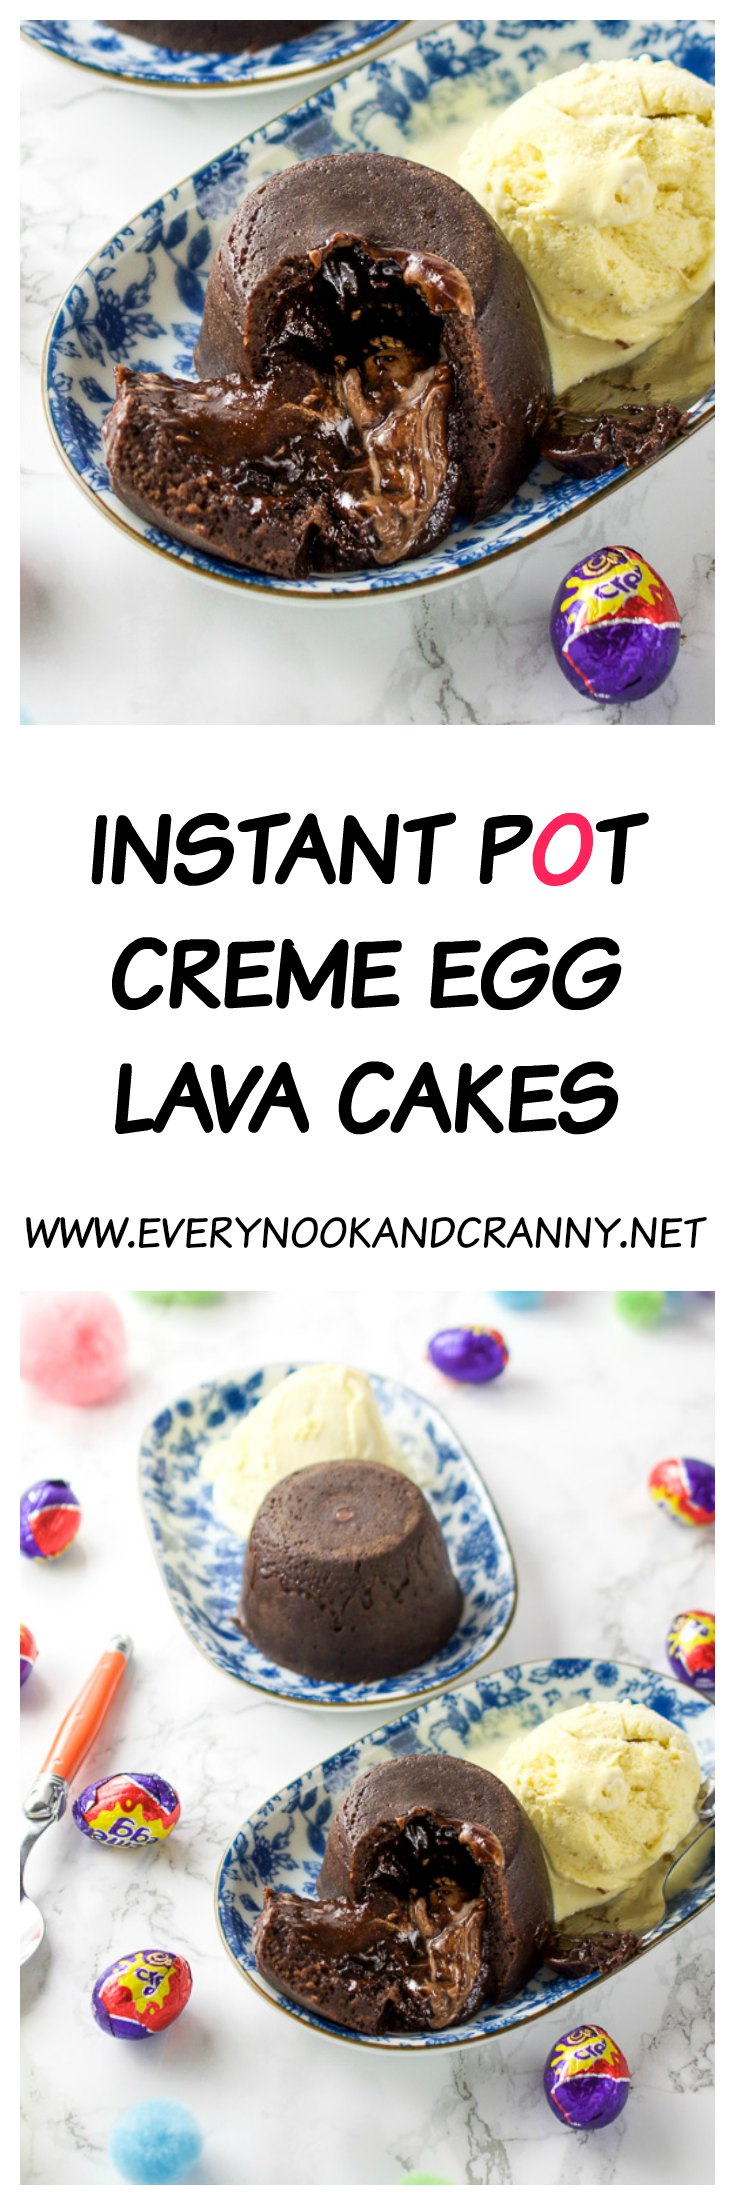 Molten middle Creme Egg lava cakes cooked in the Instant Pot